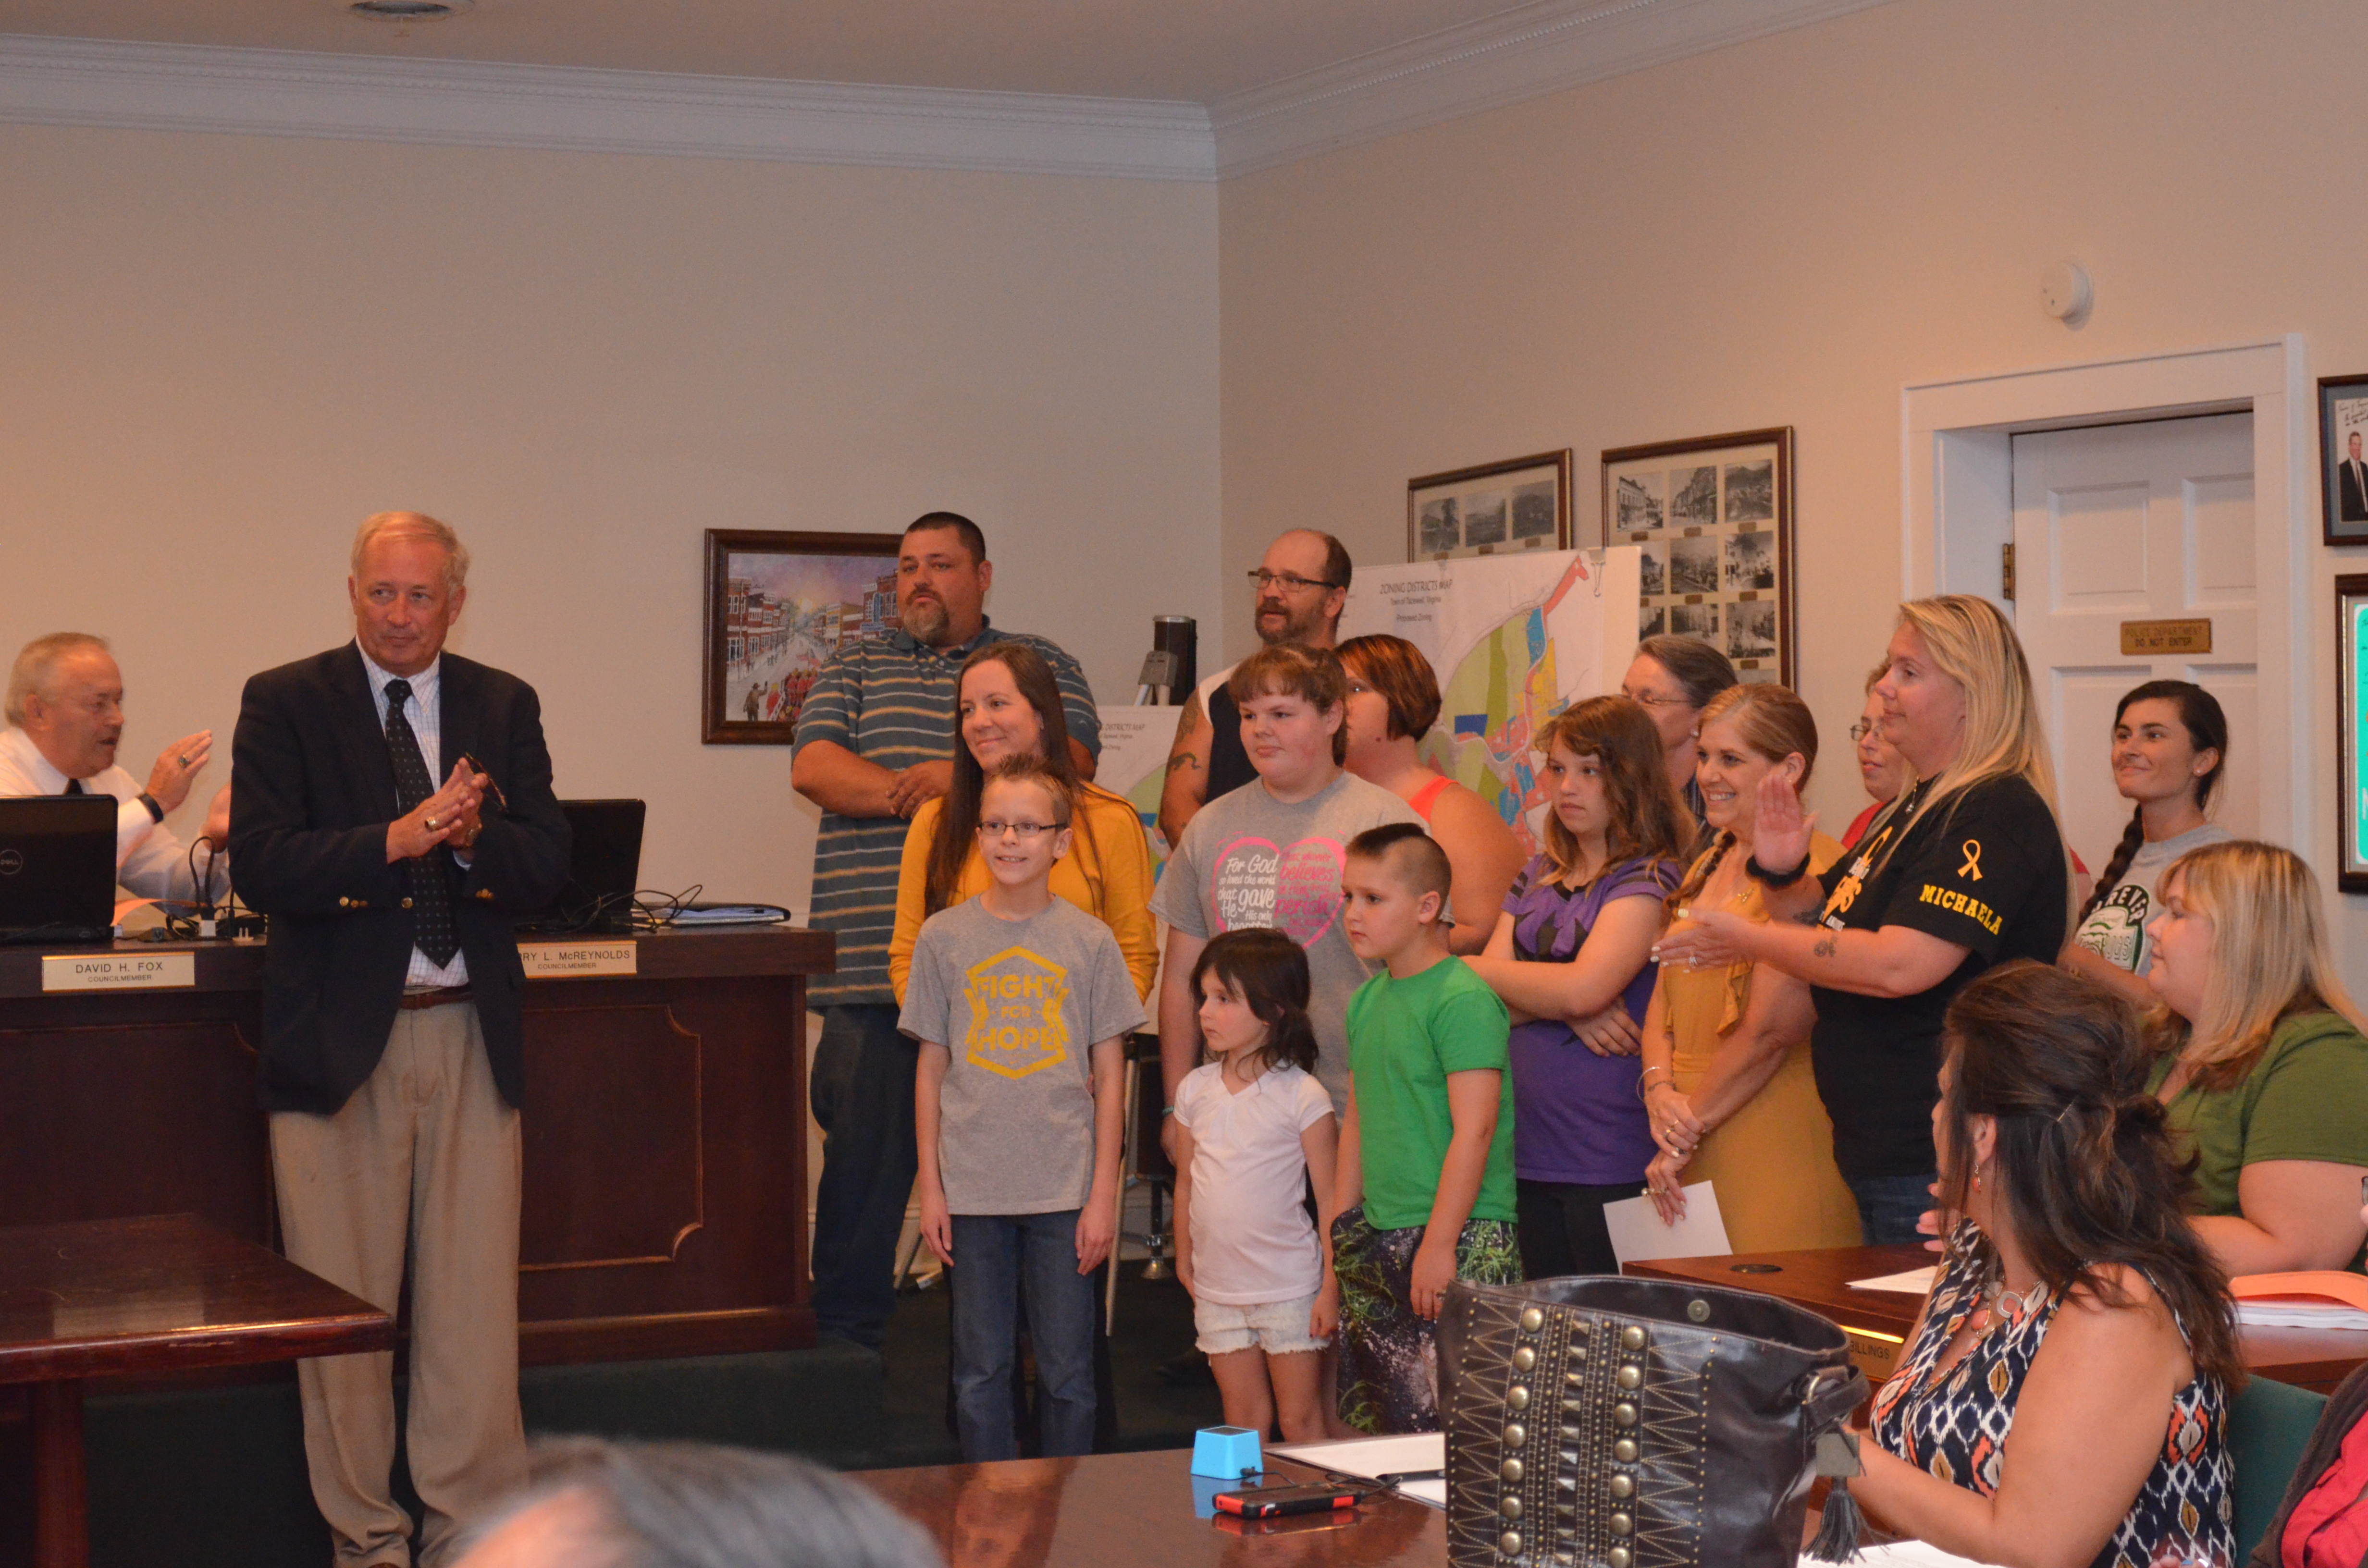 Recognition of Childhood Cancer Awareness month in September